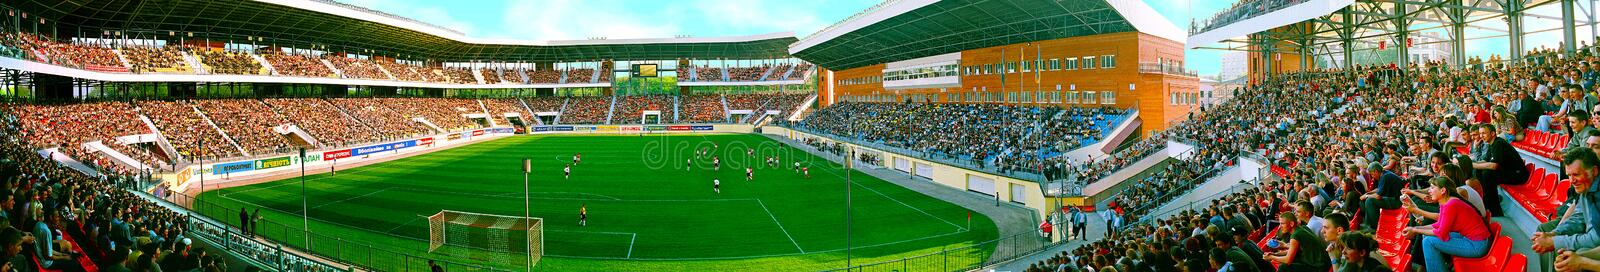 Detailed Perspective Panorama of Football Stadium Jubilee / Yuvileiny Filled with Fans During Soccer Game Daytime in Sumy, Ukraine stock images